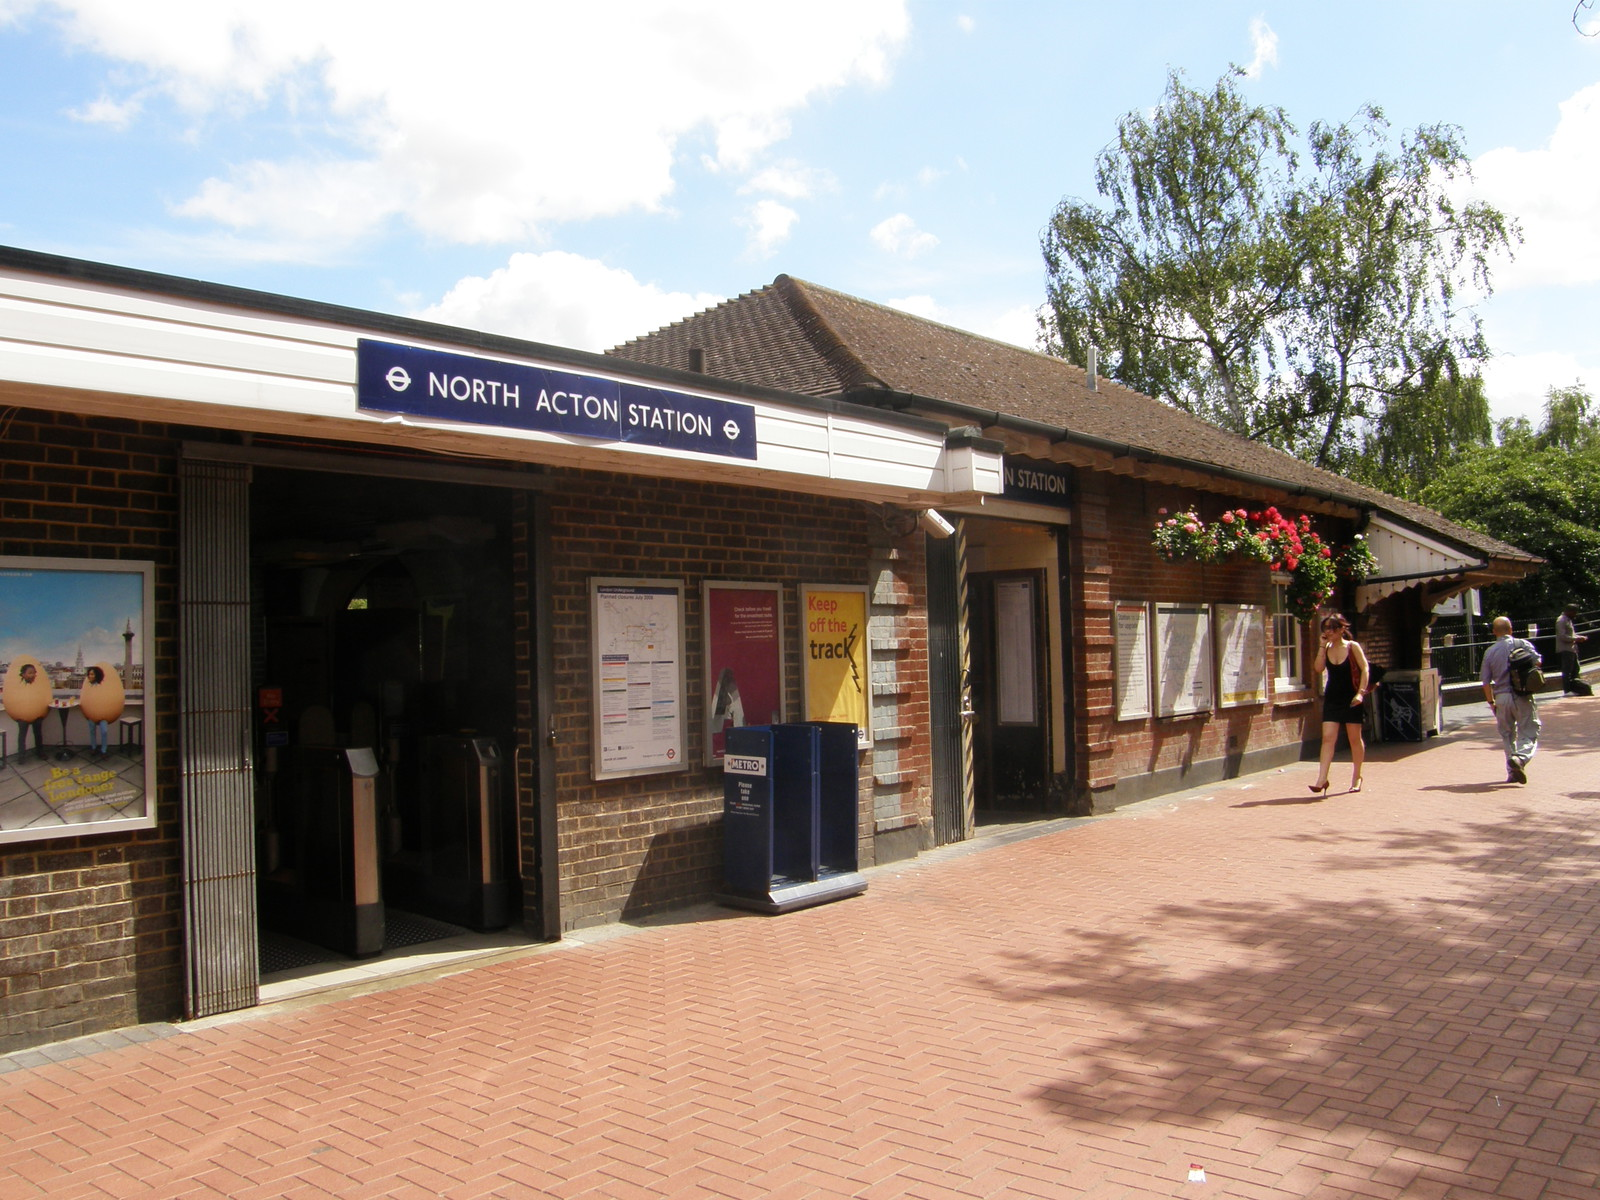 North Acton station